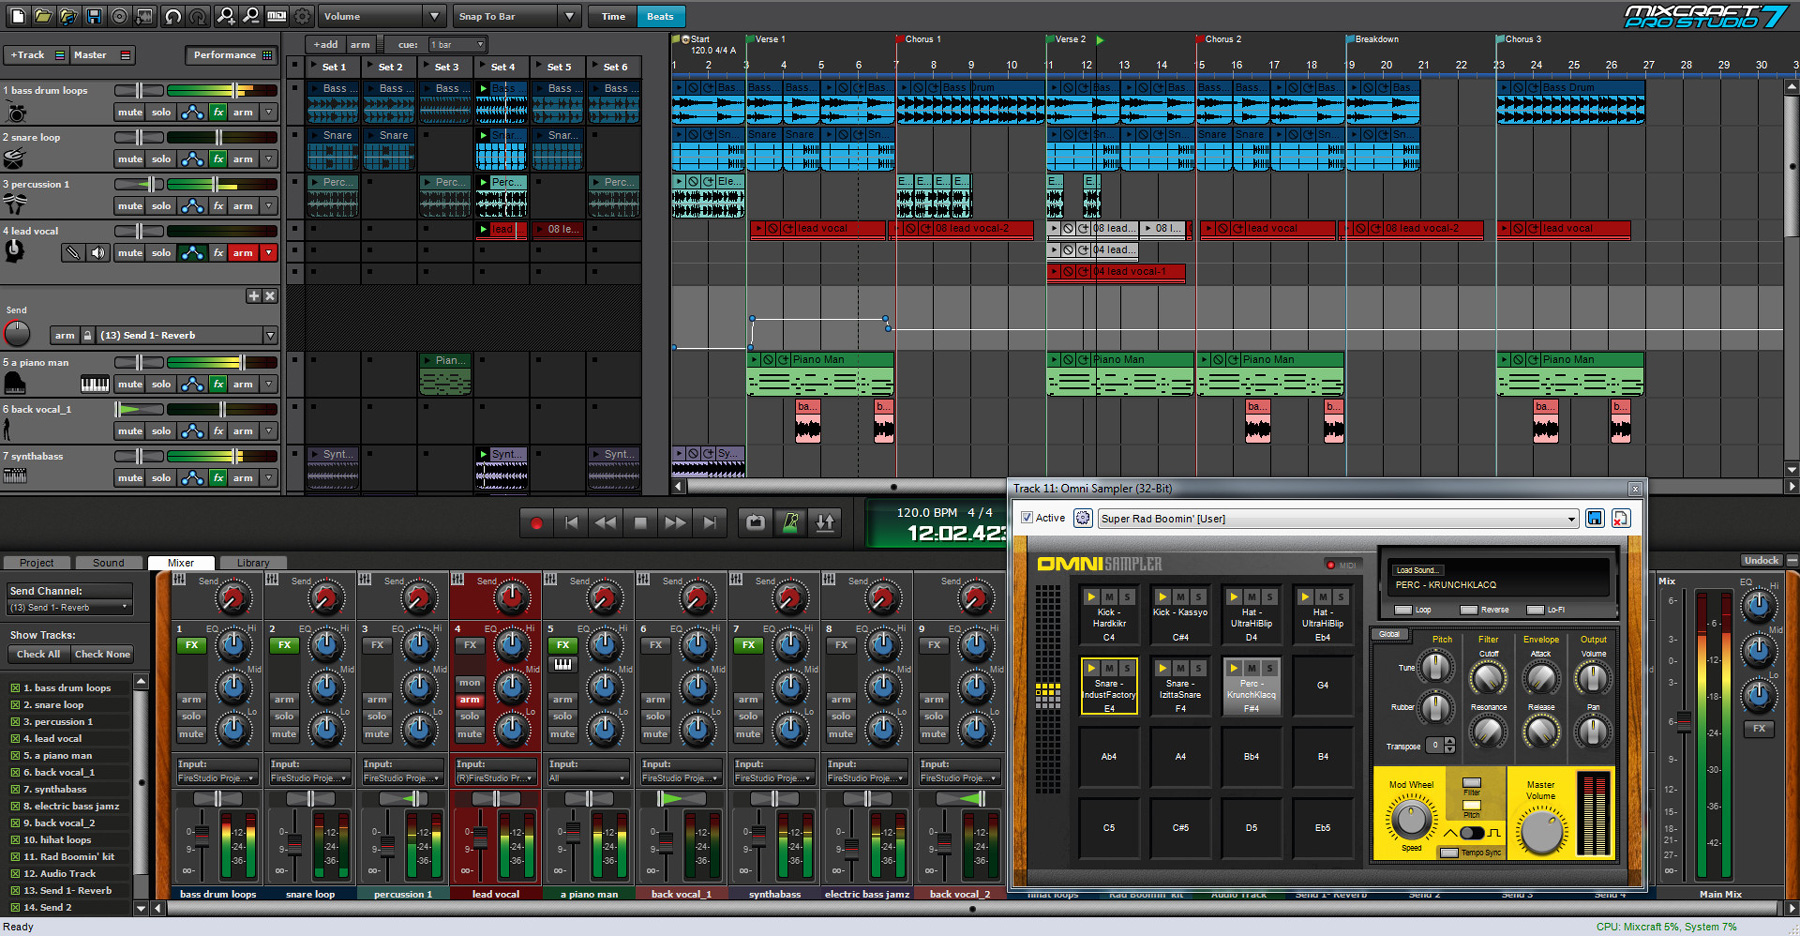 Music Sampler (Mixcraft Pro Studio 7 [Download])